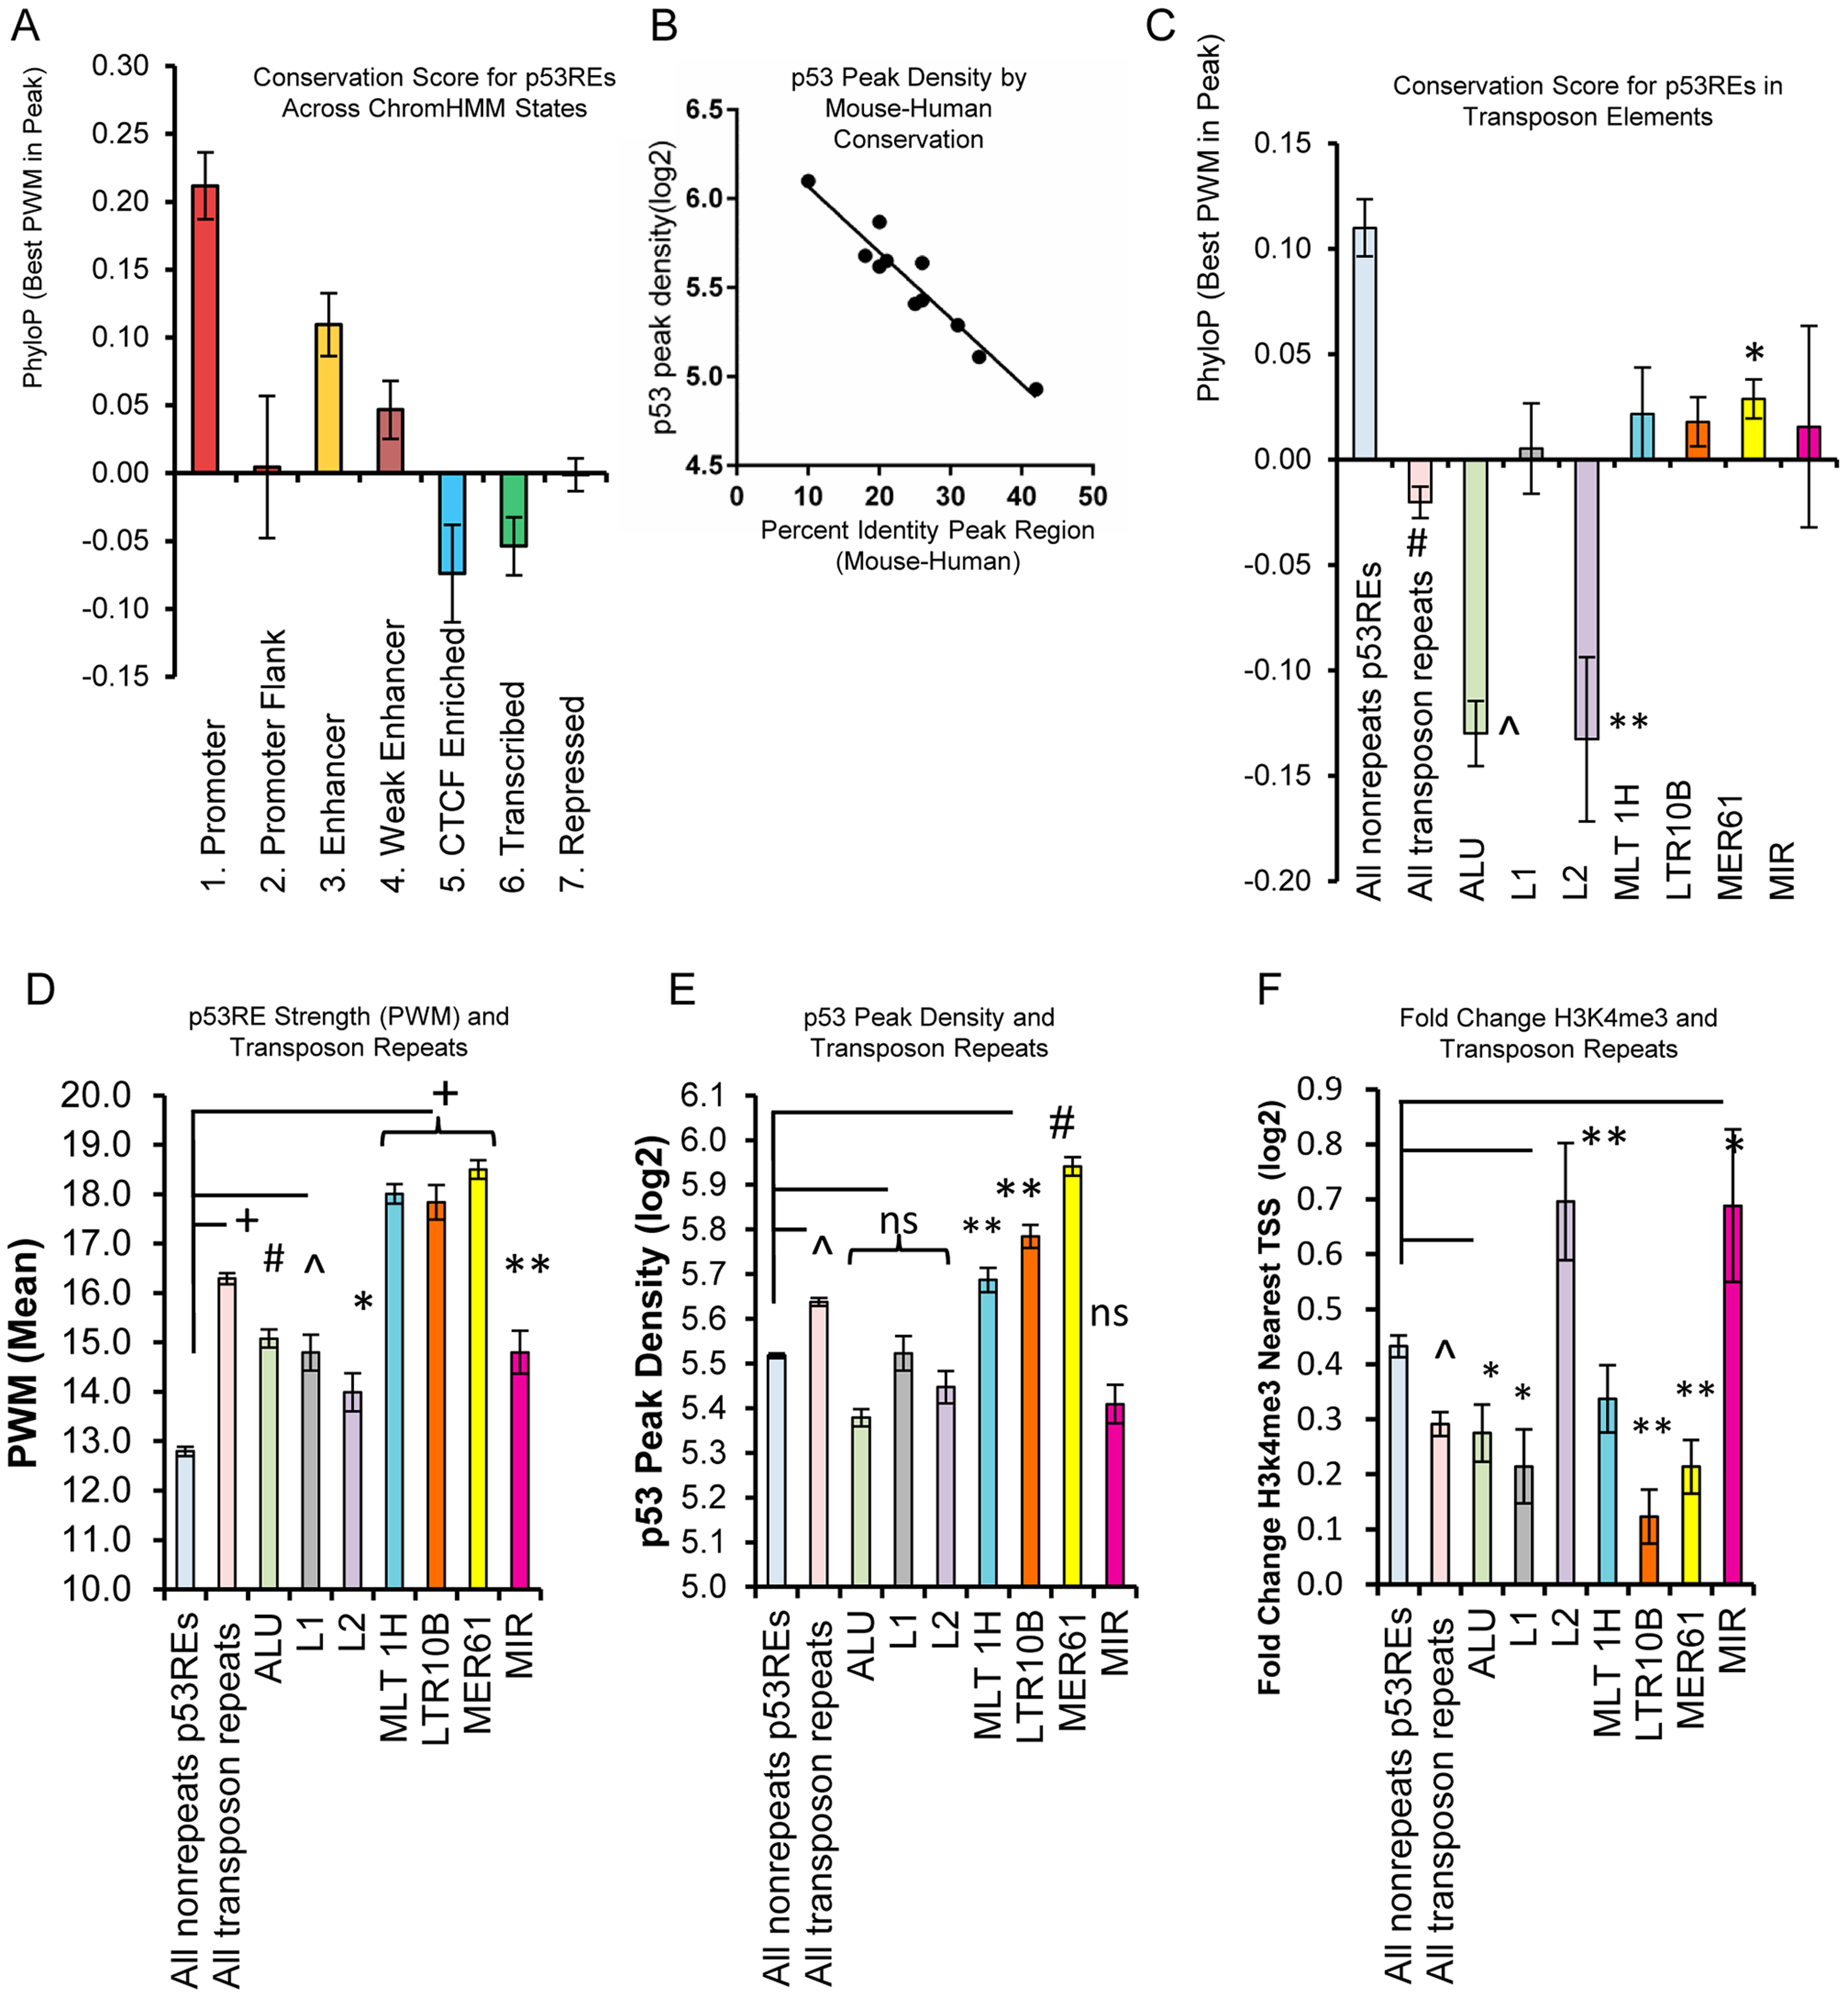 p53REs show diverse levels of conservation, occupancy, strength, and transactivation across chromatin states and among families of transposable elements.